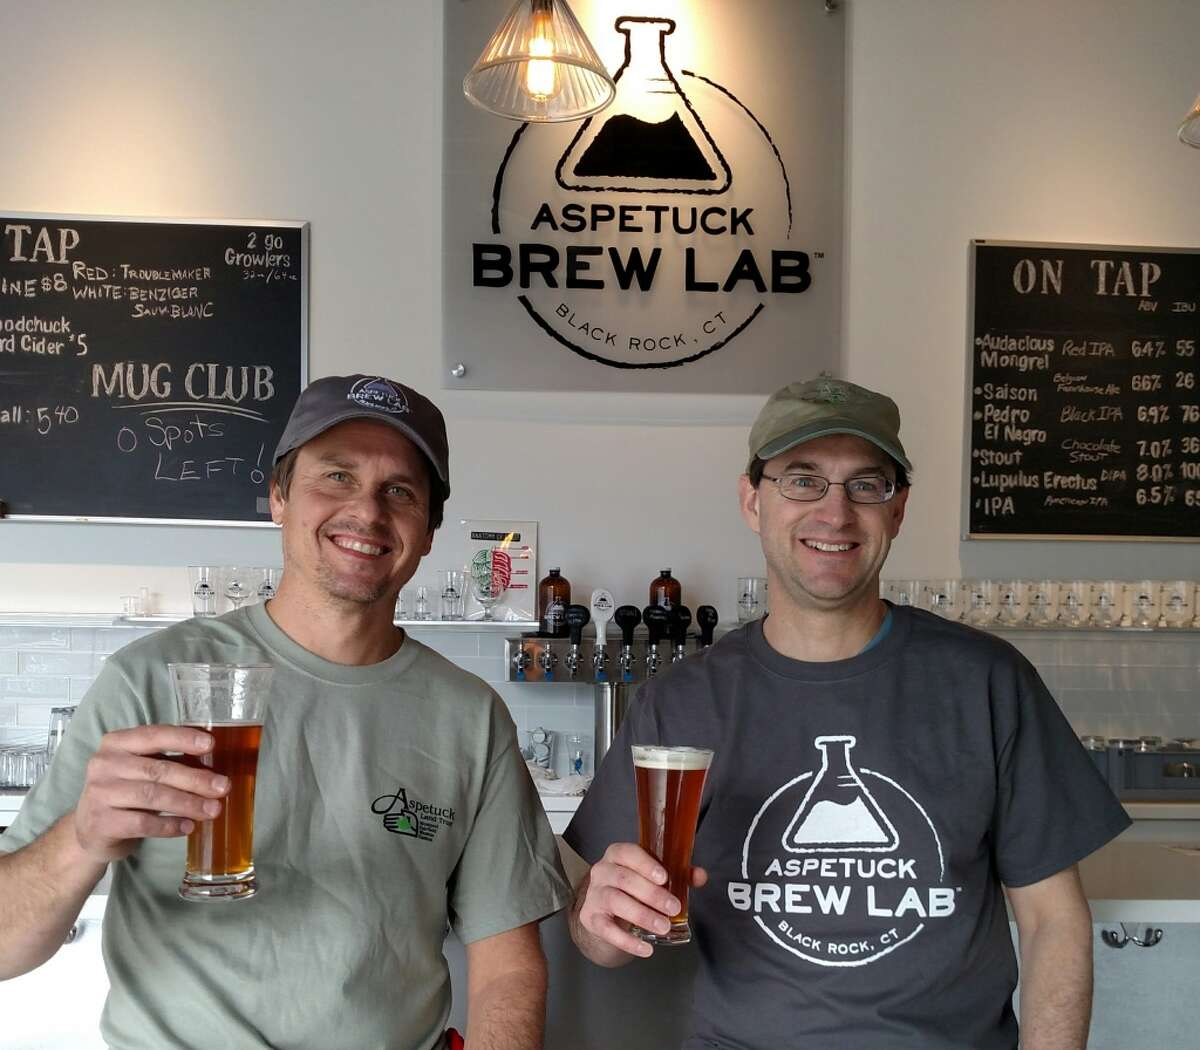 Newly opened Aspetuck Brew Lab, located in Bridgeport, is partnering with the Aspetuck Land Trust in recognition of Earth Day on Friday they'll donate $1 for every pint sold and $2 for every 64oz growler sold to the trust. Find out more.